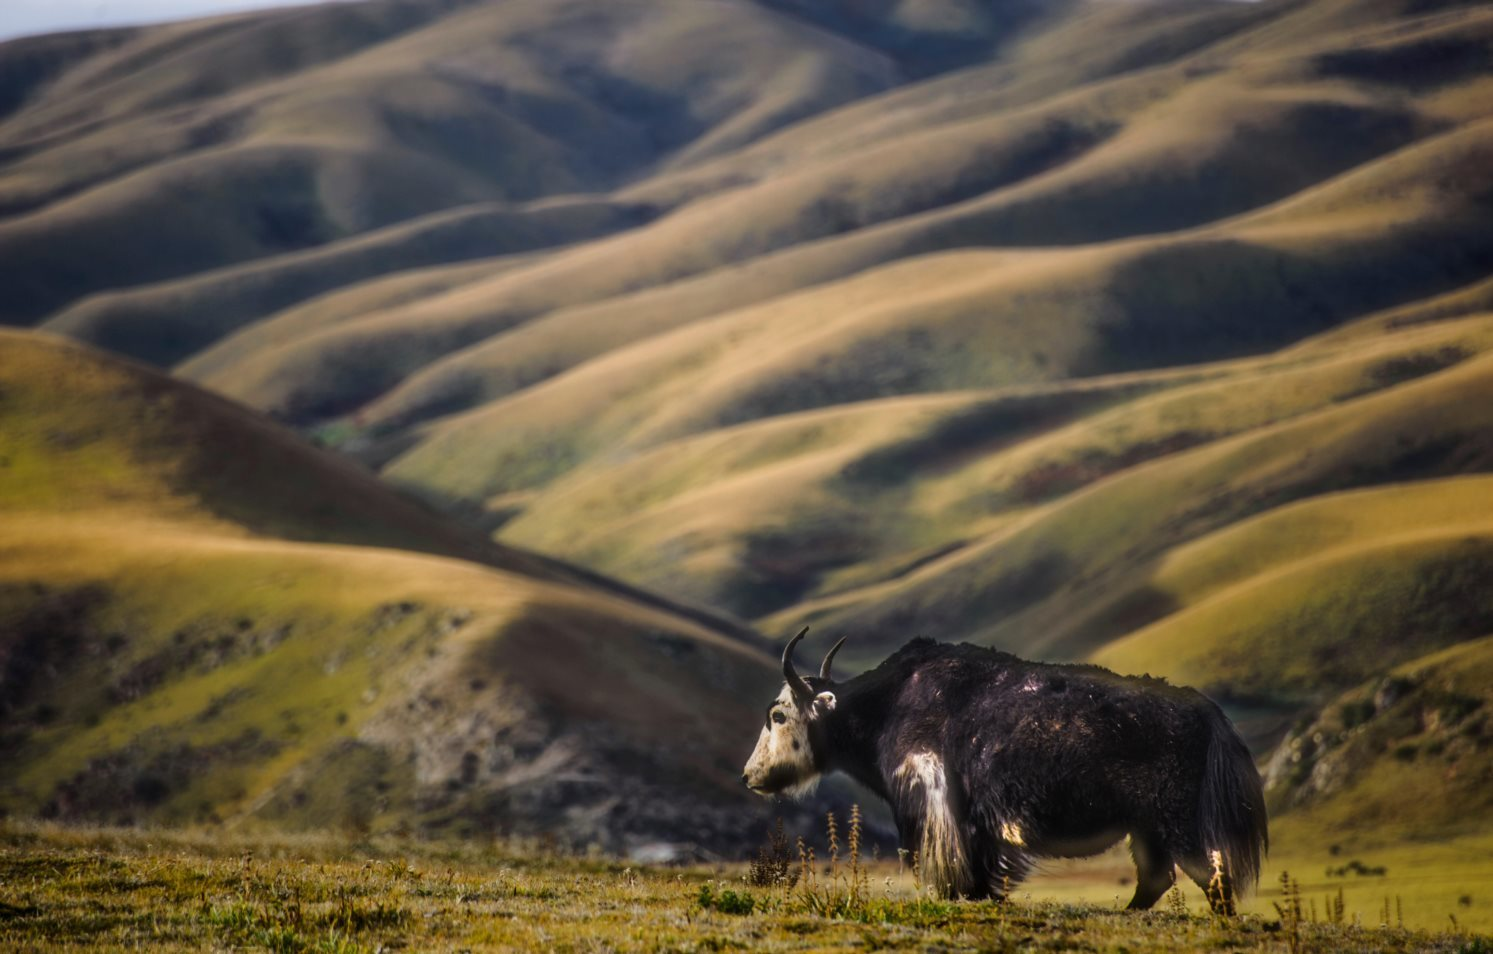 A yak on the Tibetan plateau